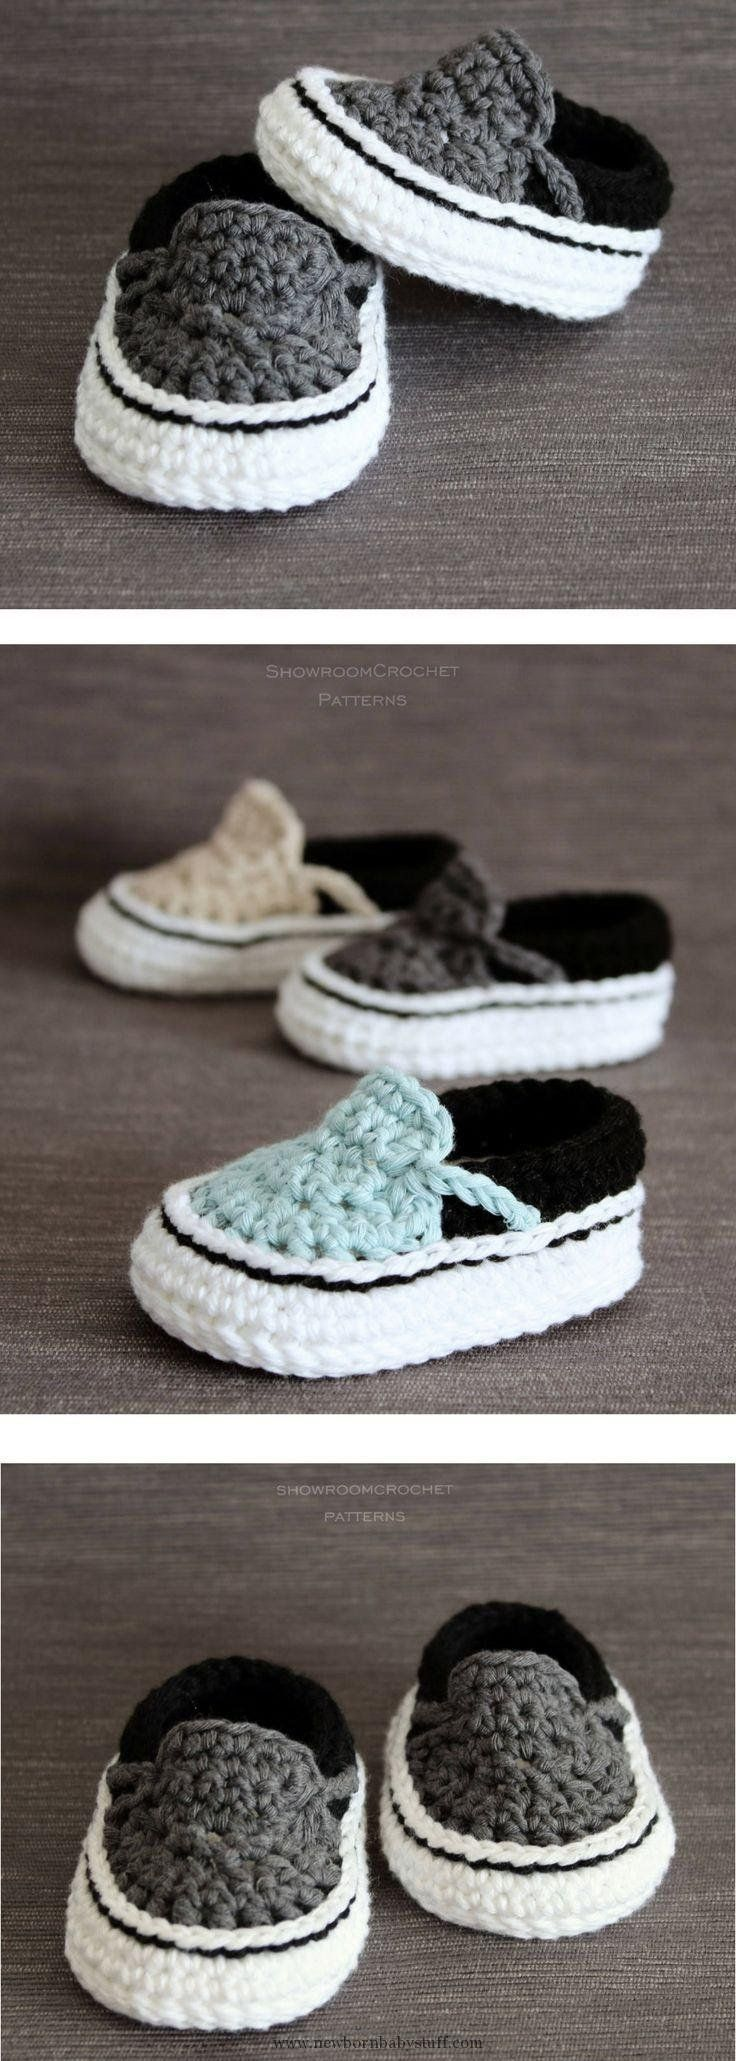 Crochet Child Booties Crochet PATTERN. Vans type child sneakers. Prompt Obtain. Crochet Baby Booties